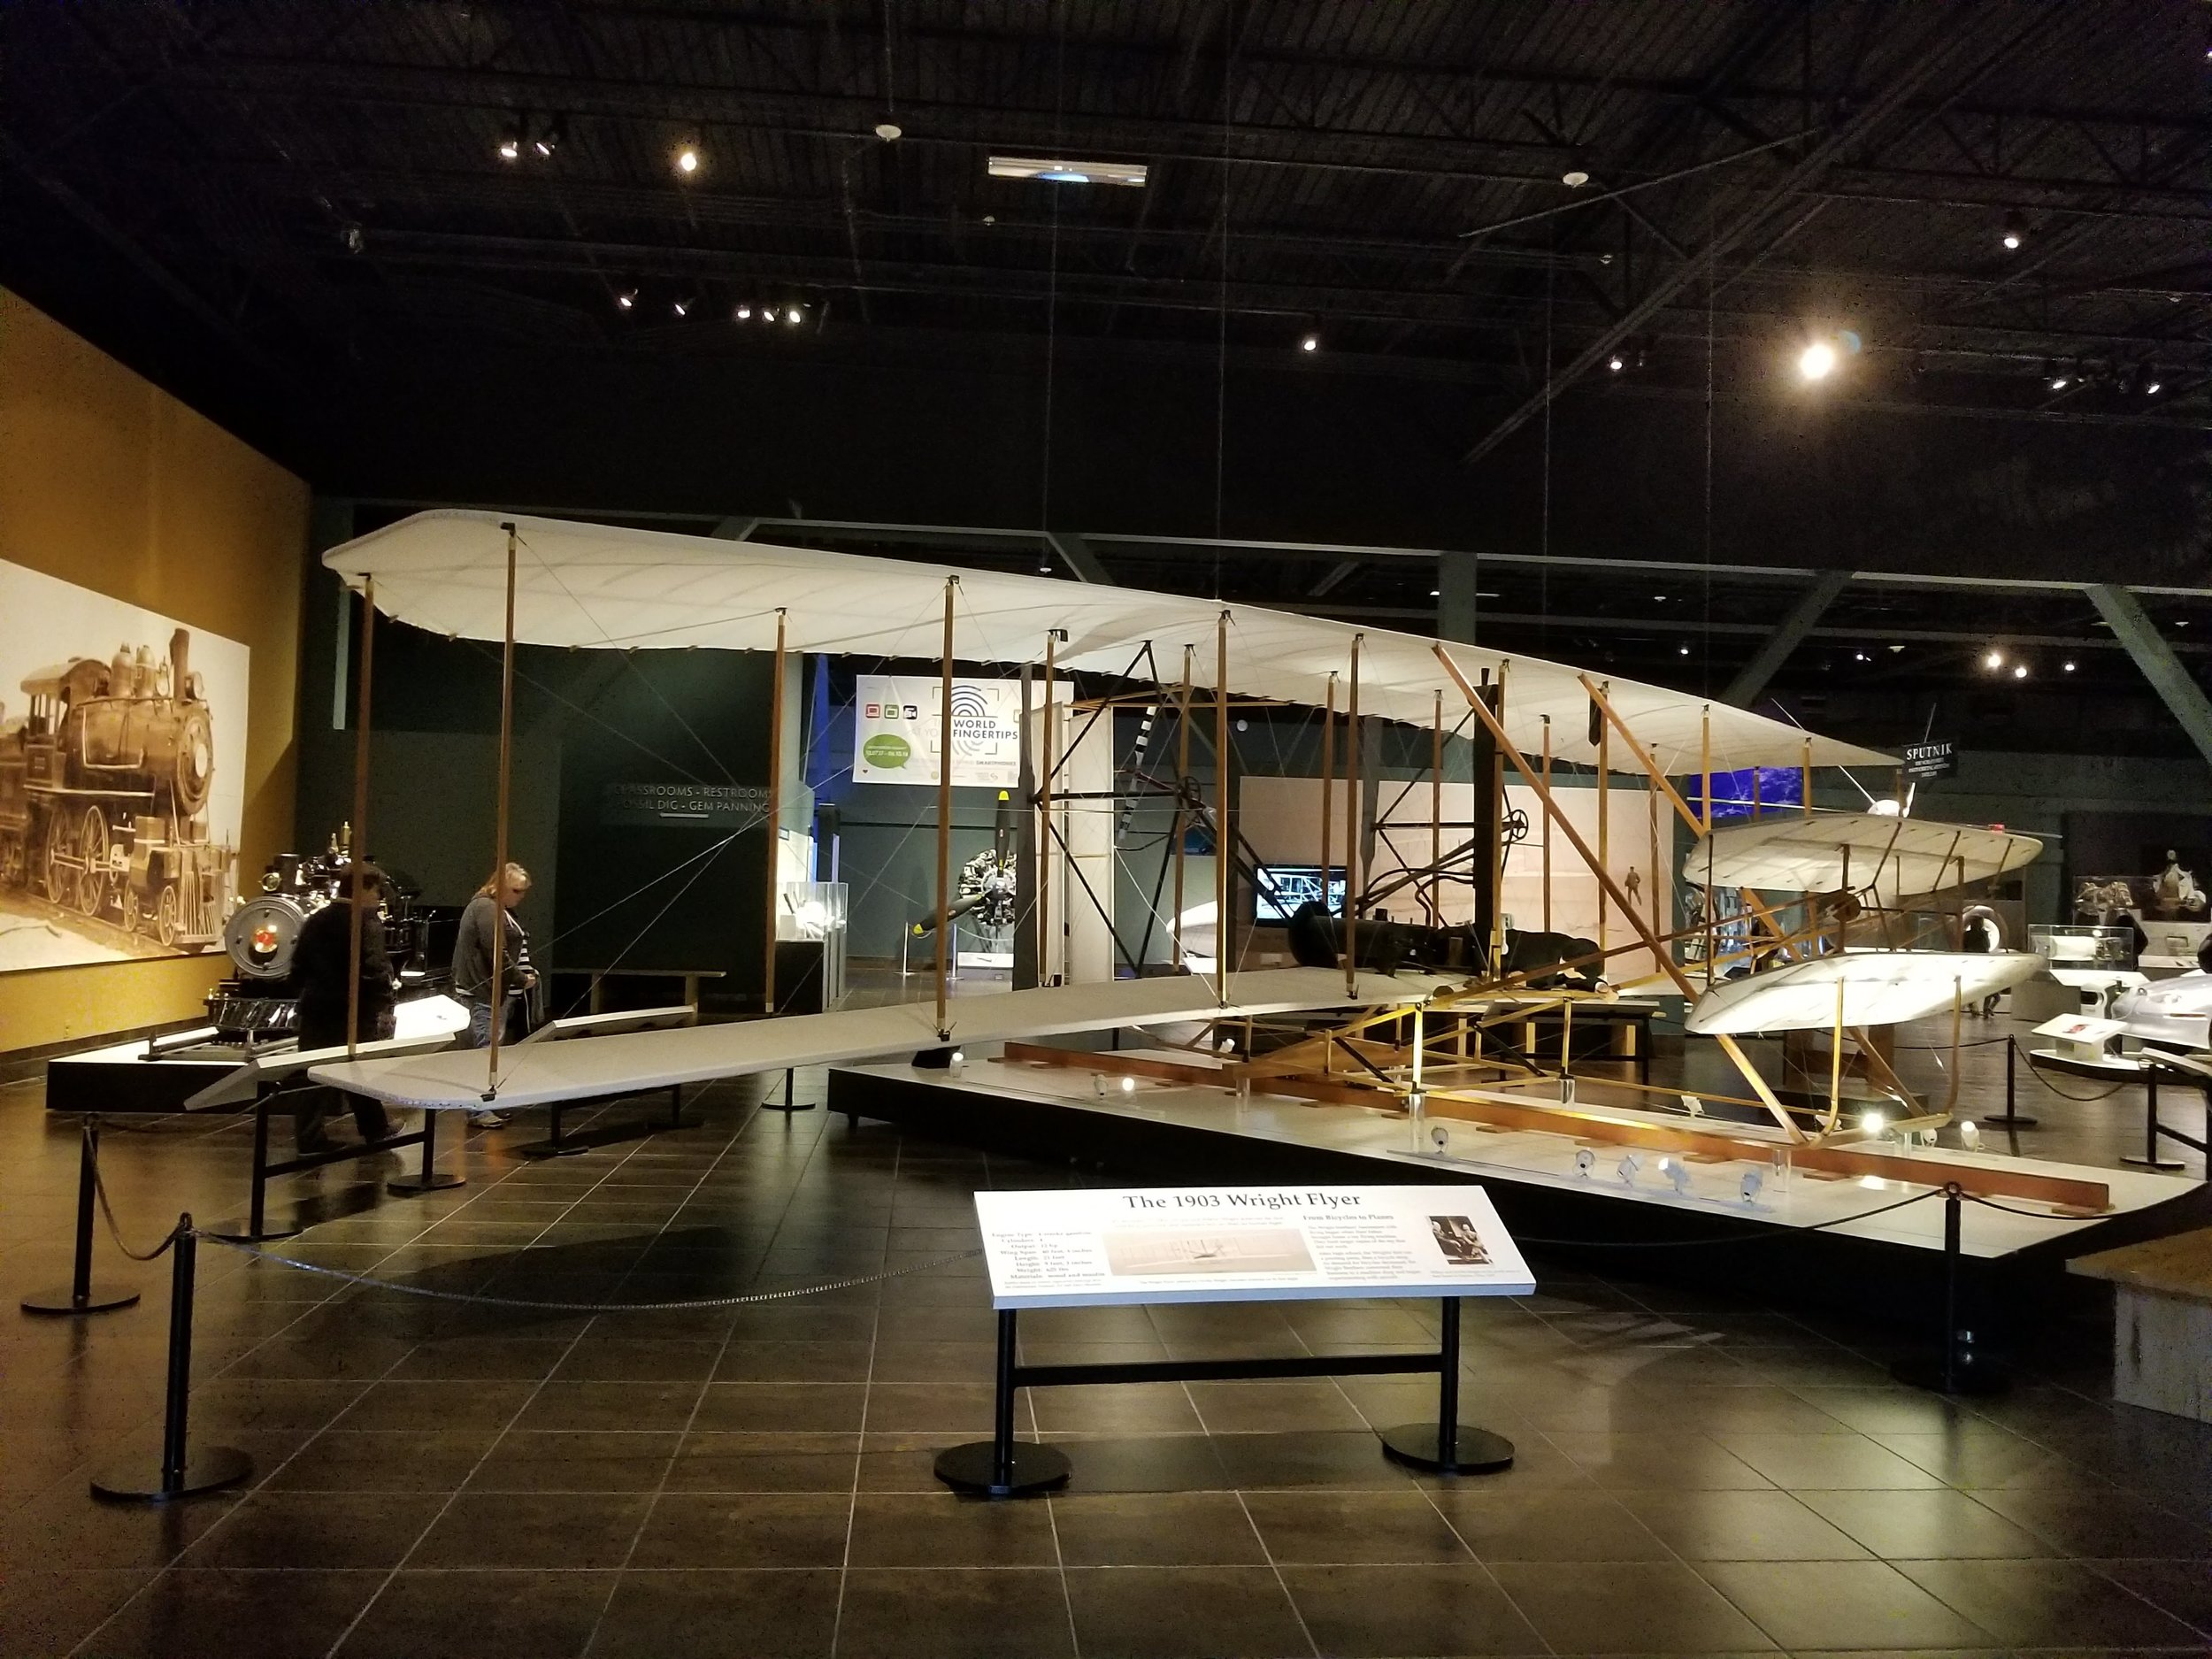 Wright Flyer, complete with model pilot.